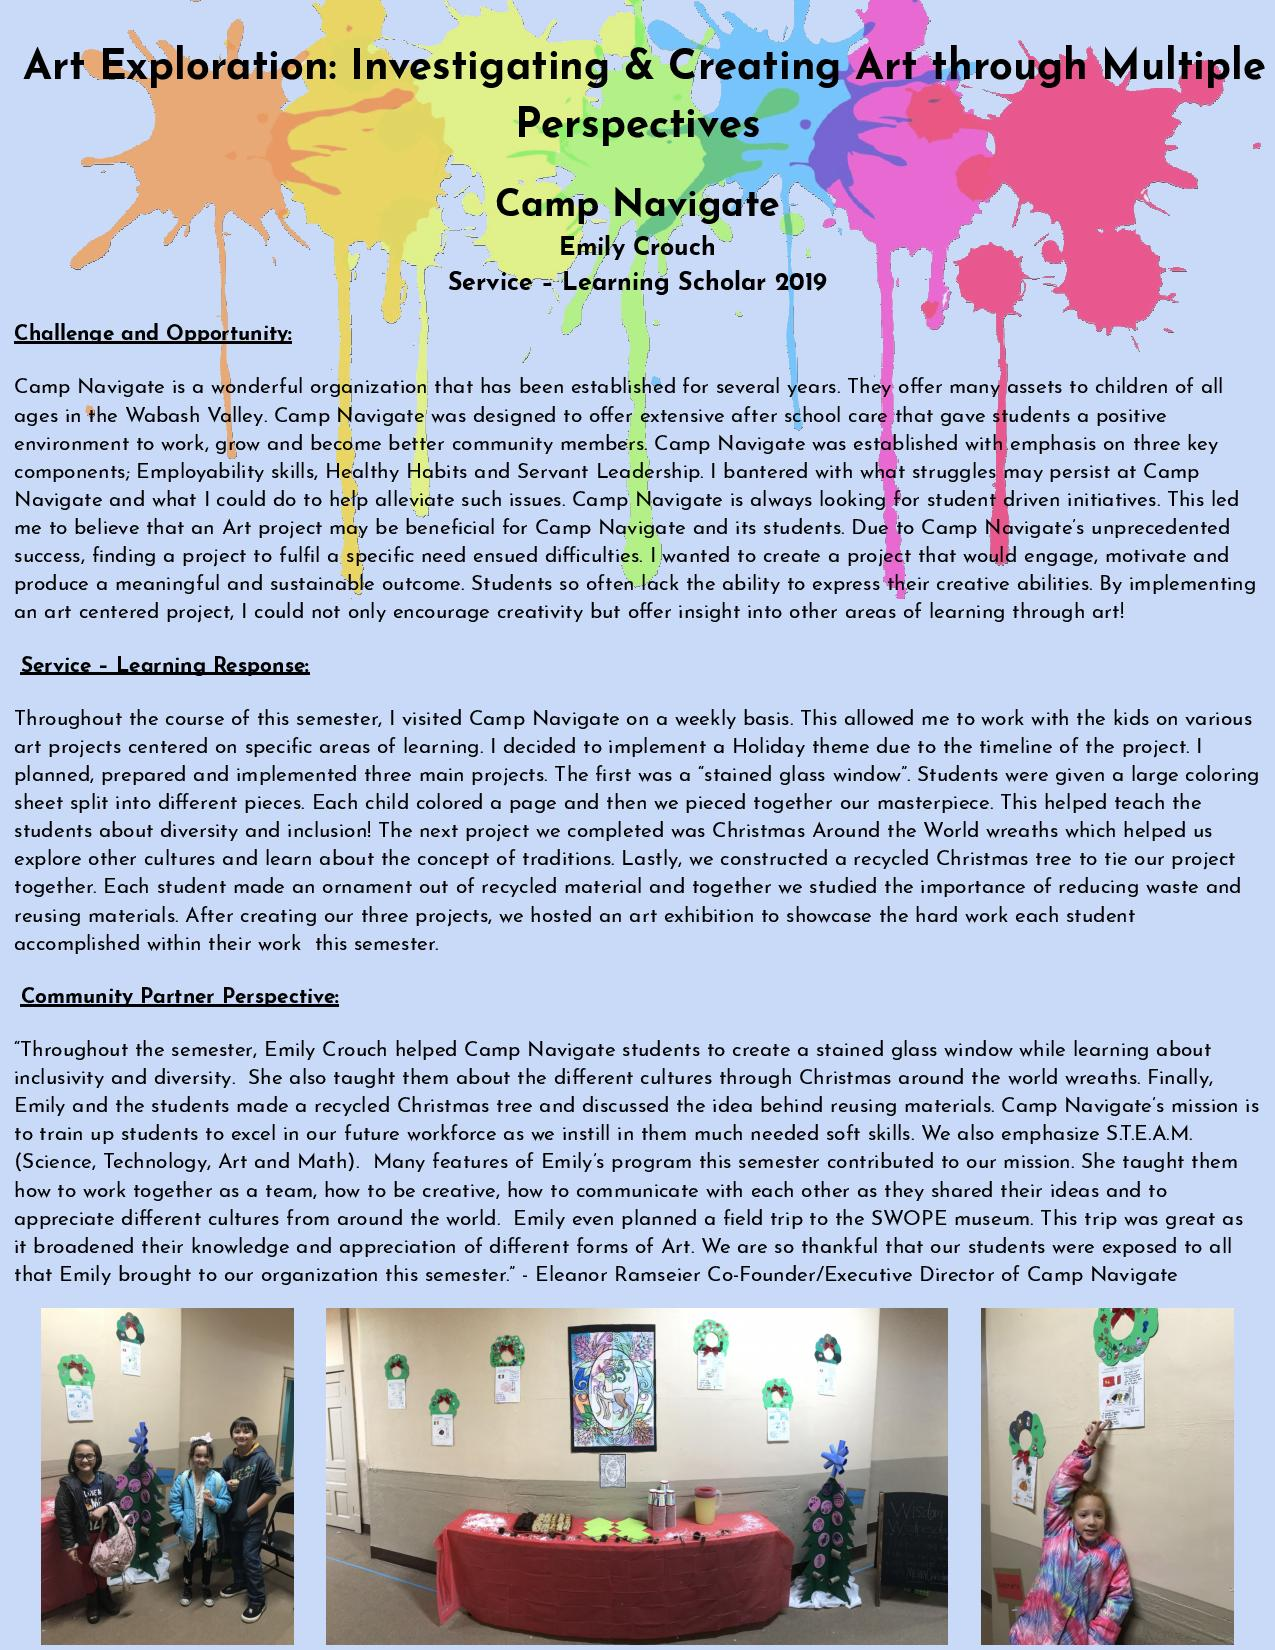 emily-crouch-rcsm-461-final-poster-presentation12357-page-001.jpg